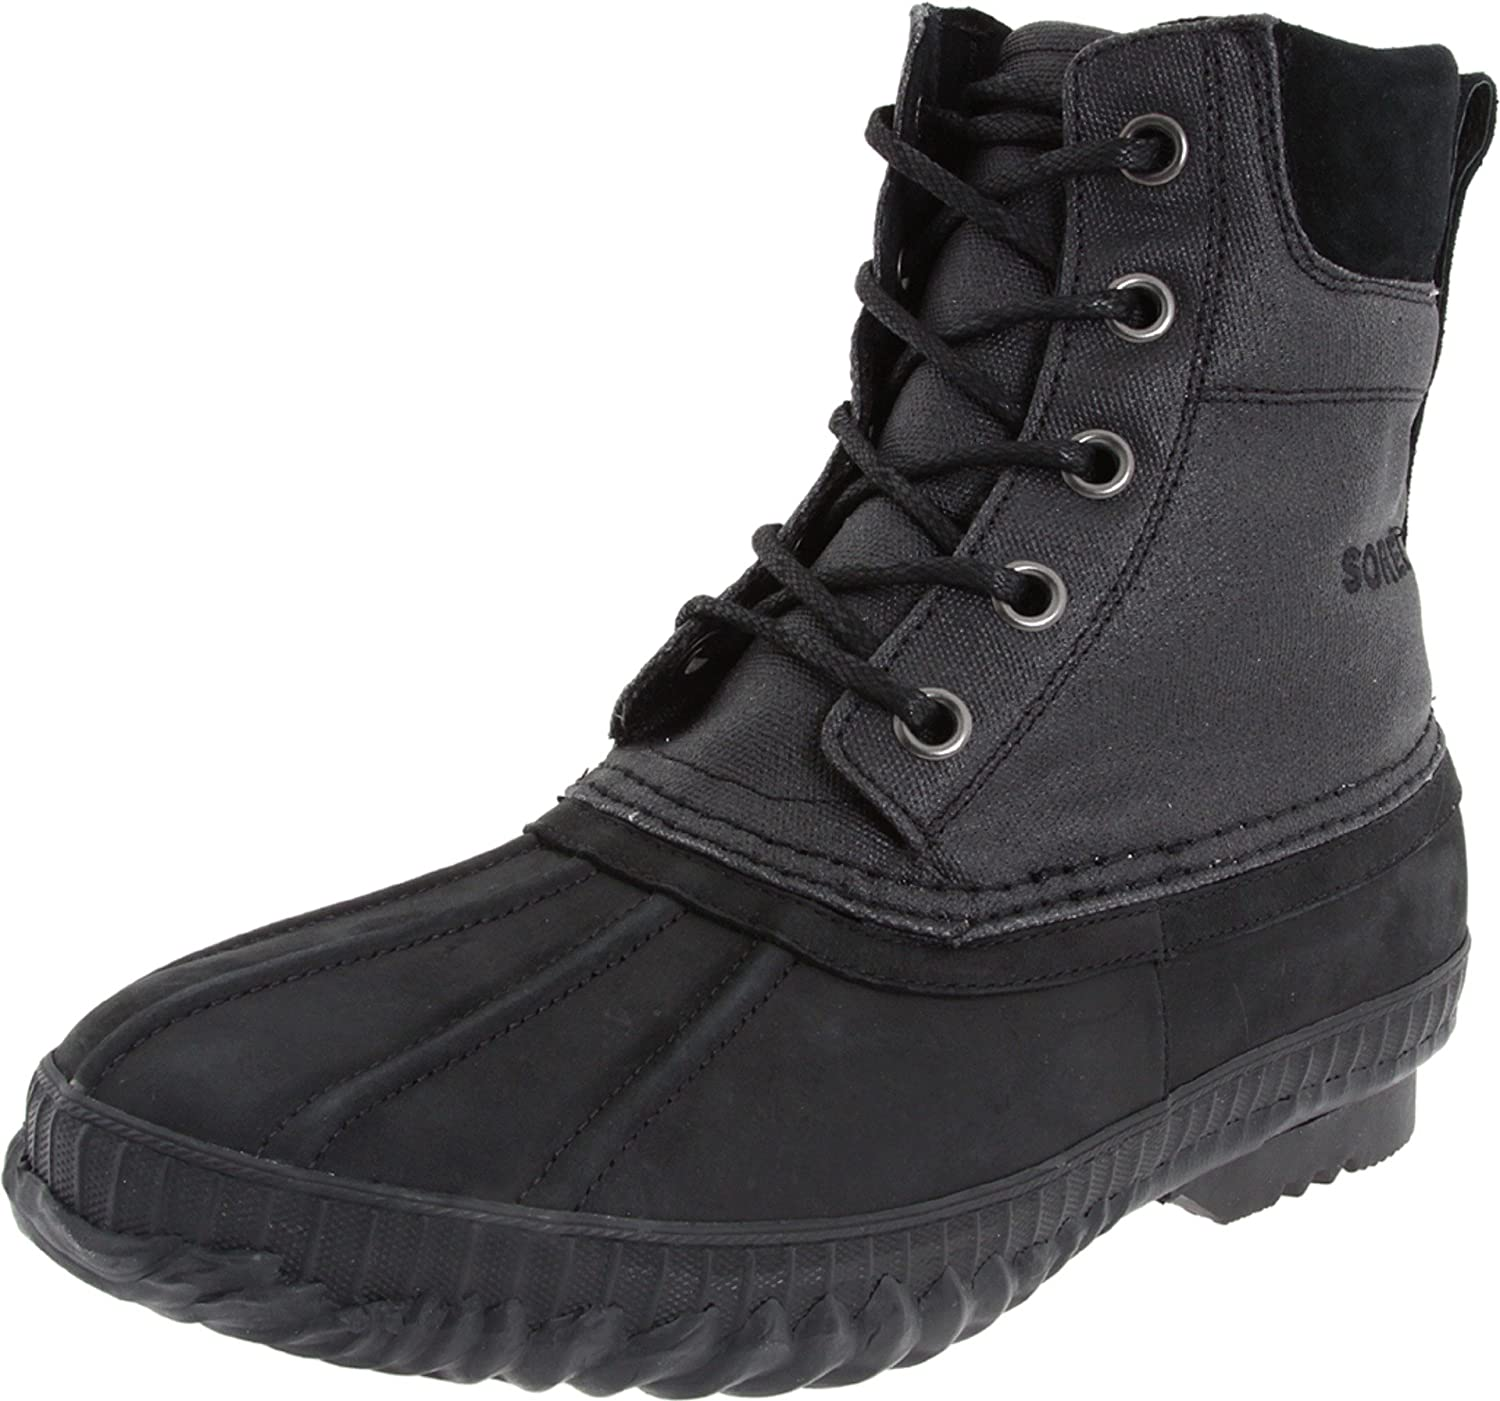 Sorel Men's Cheyanne Lace NM1723 Boot,Black,10 M US